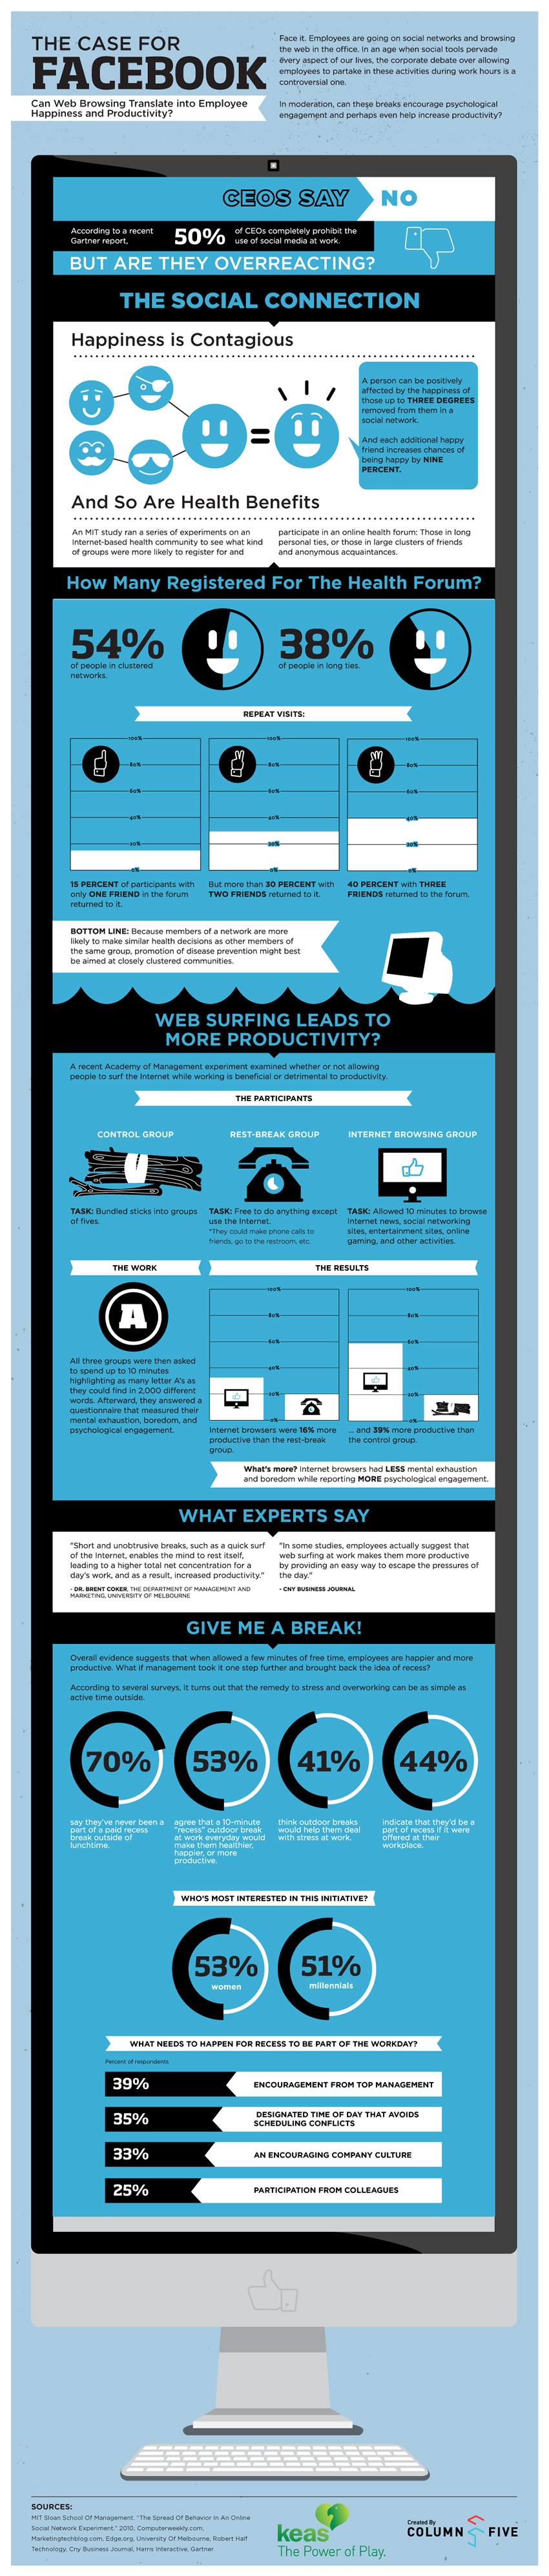 Does Web Browsing During Breaks Lead To More Productivity